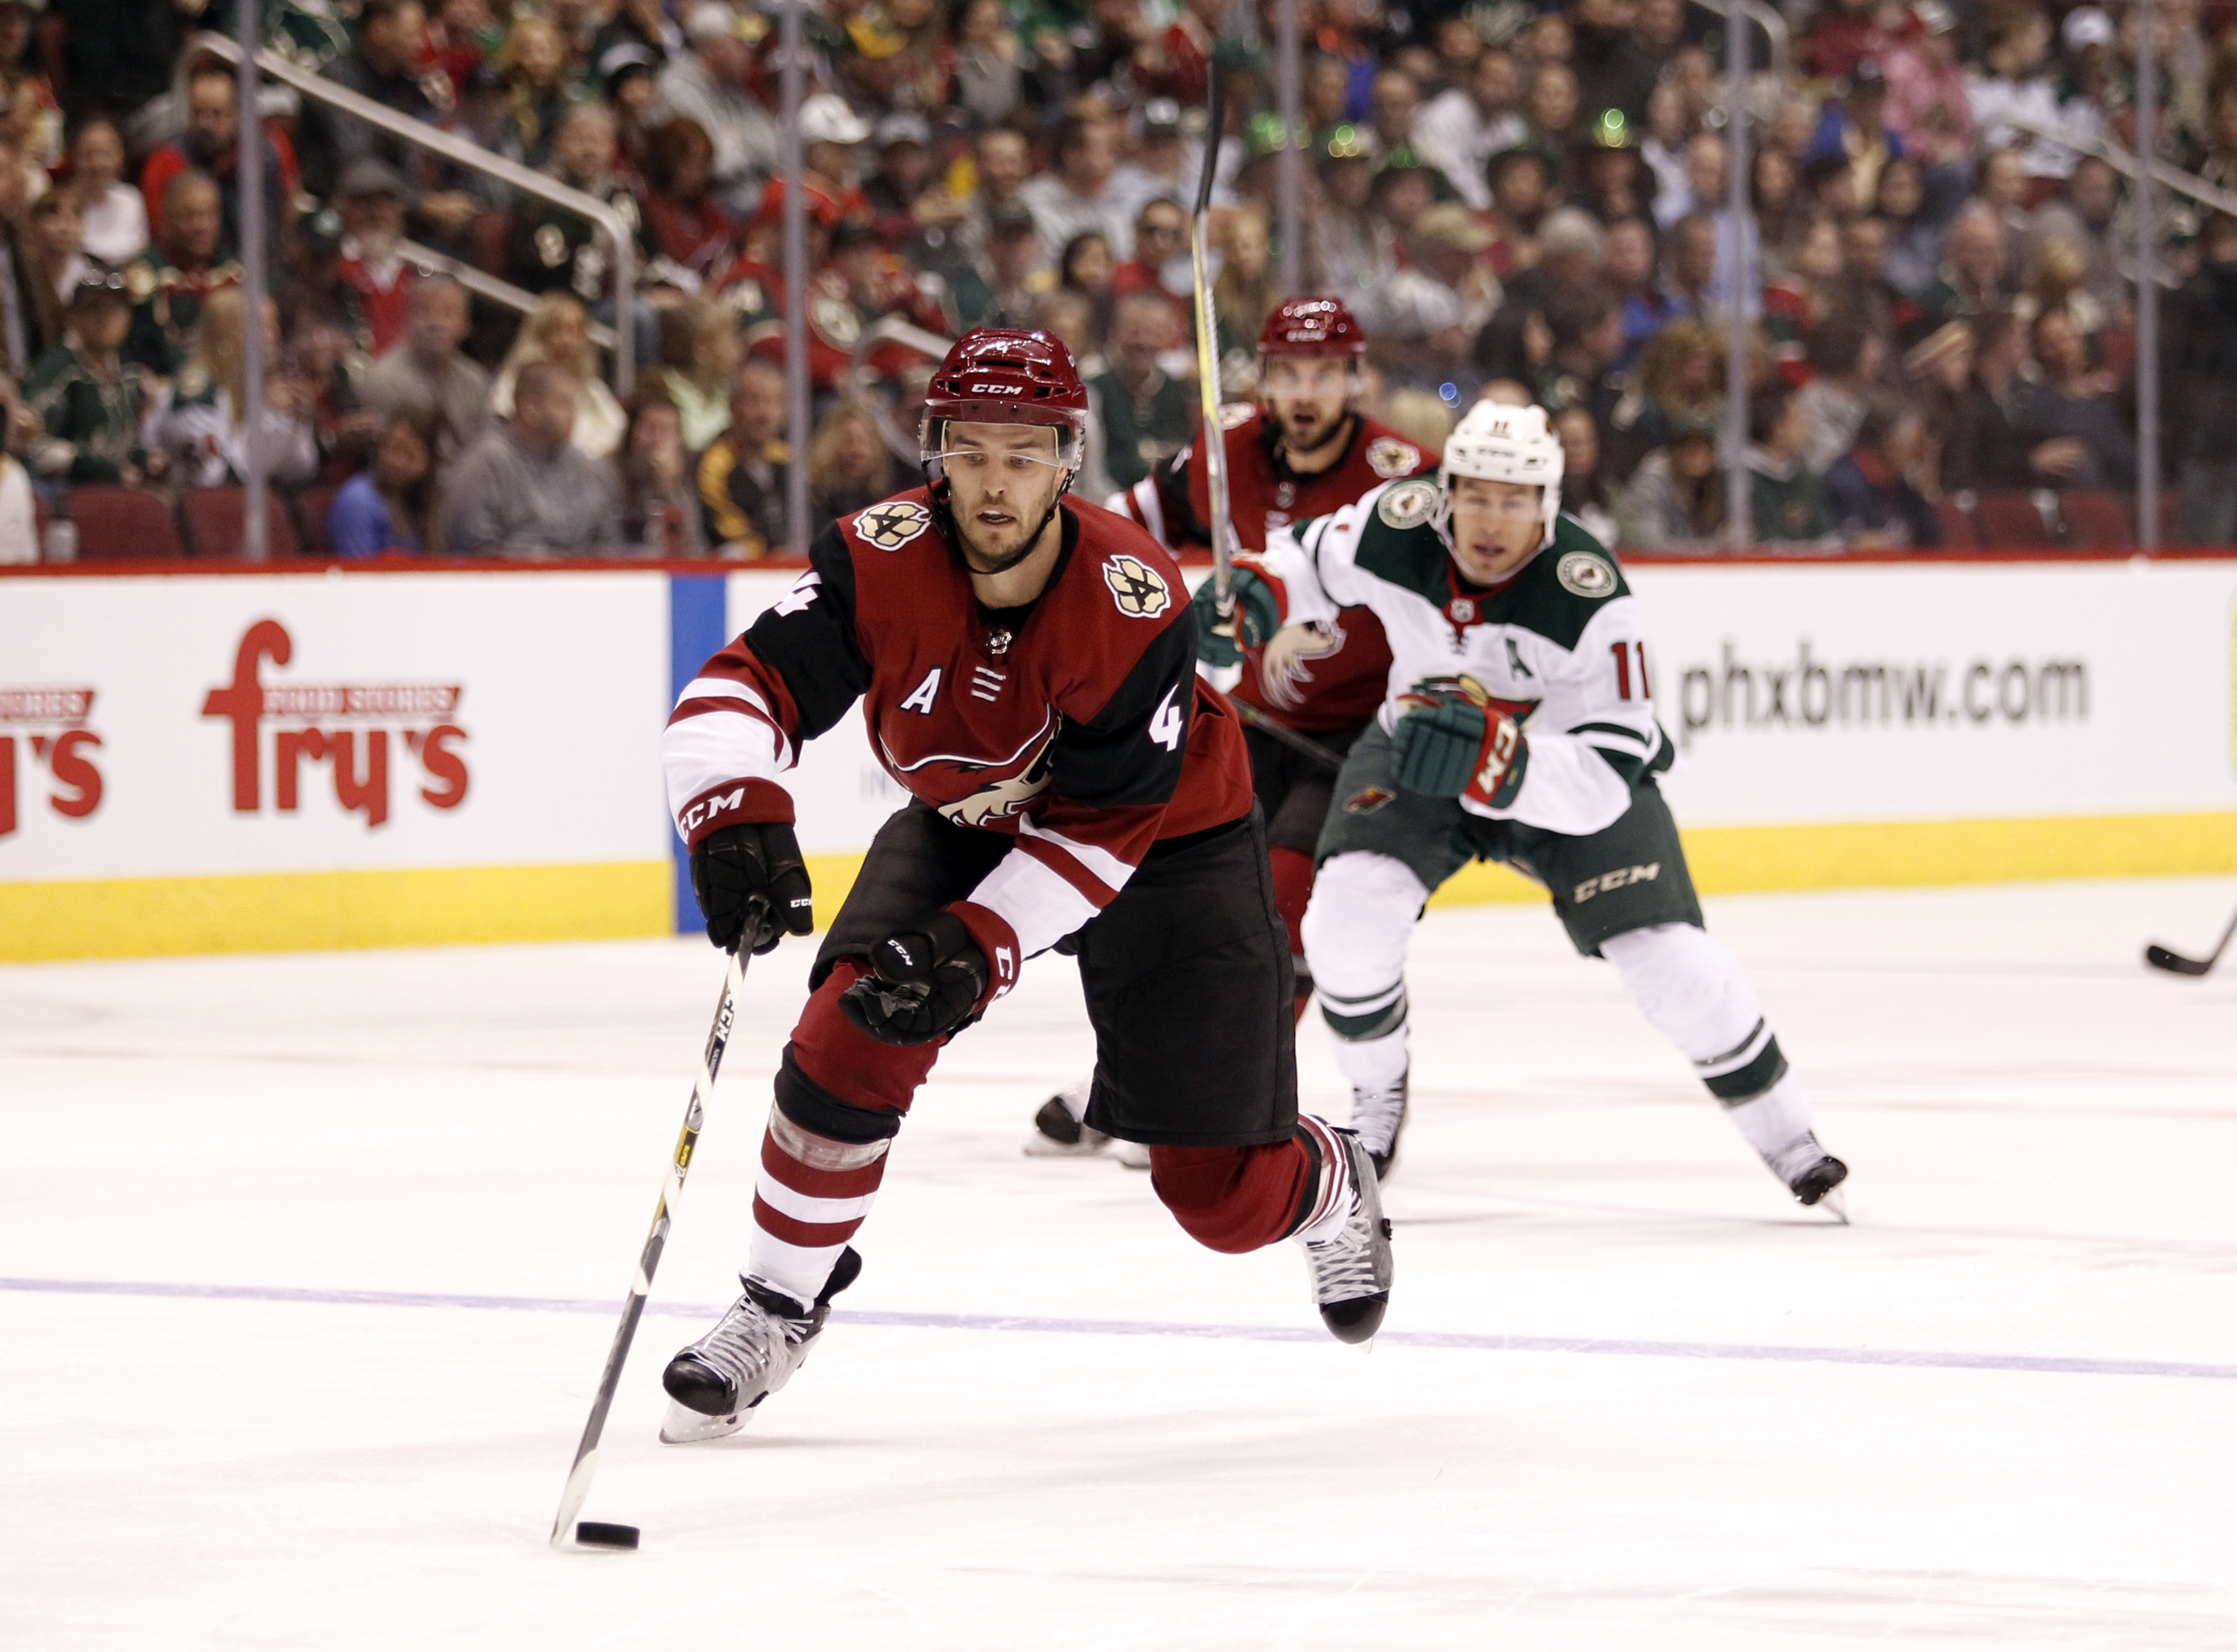 Minnesota Resilient in 4-3 Victory Over Arizona